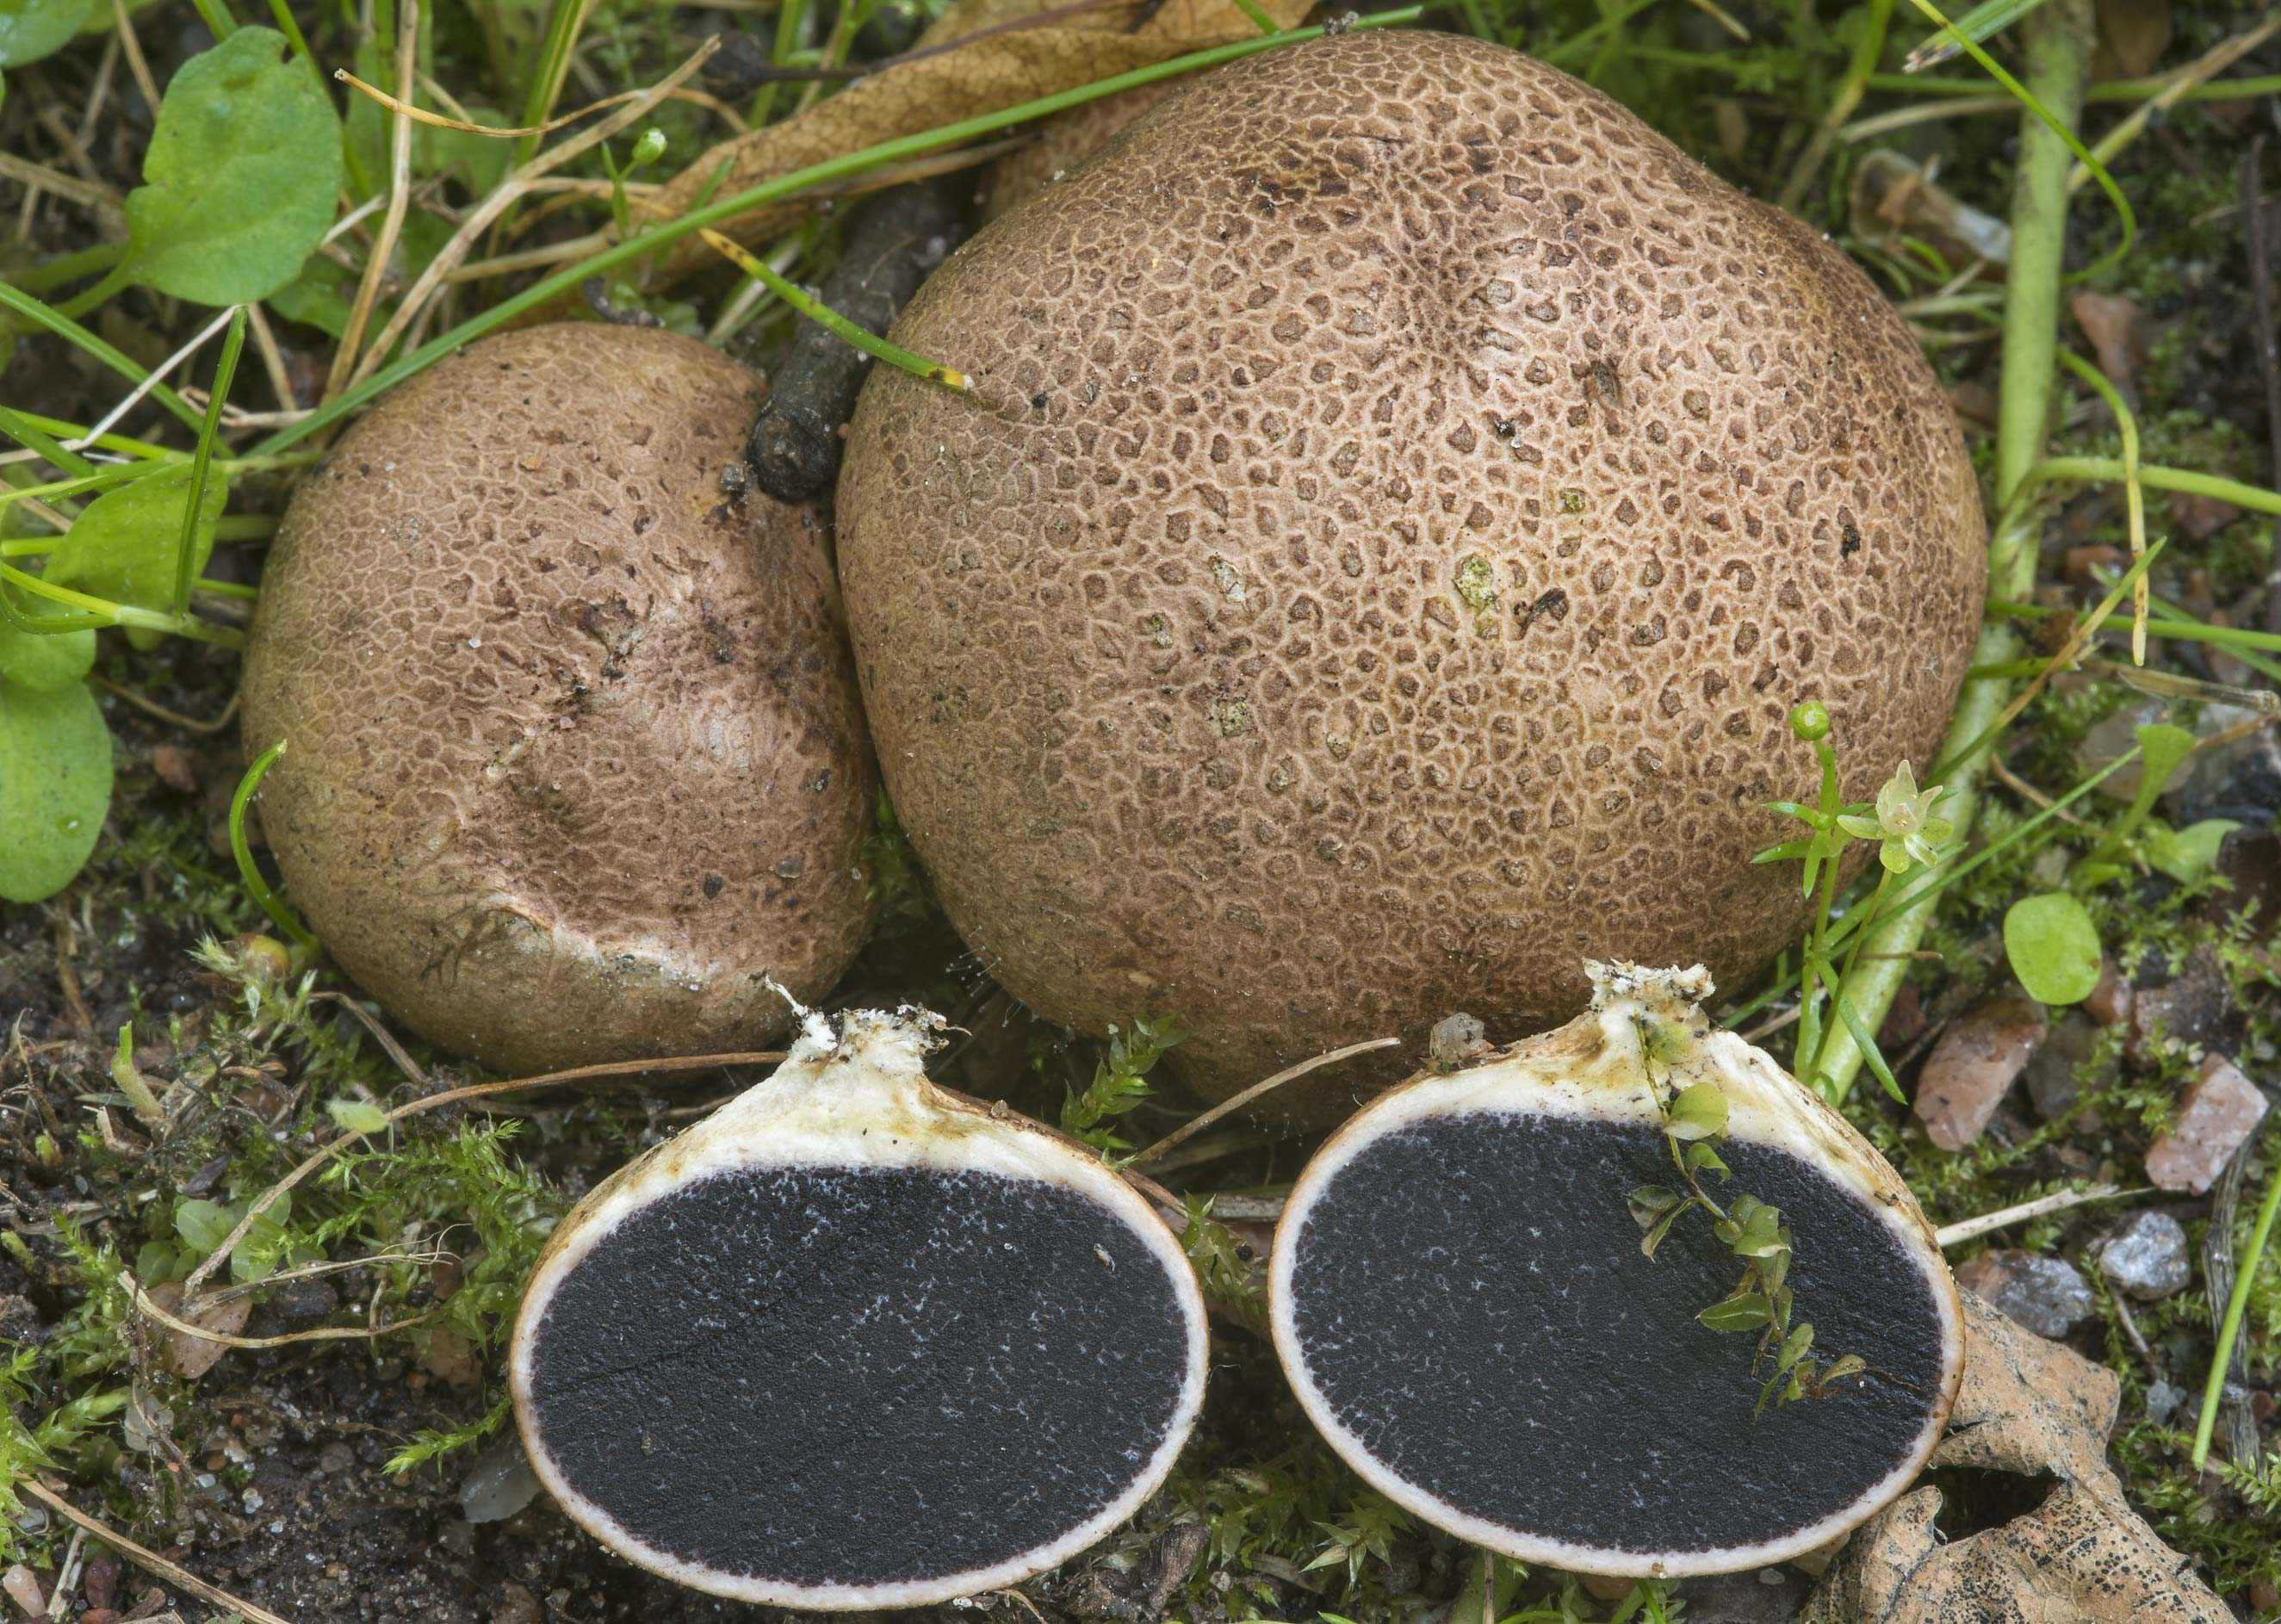 Leopard earthball fungus (Scleroderma areolatum...Institute. St.Petersburg, Russia